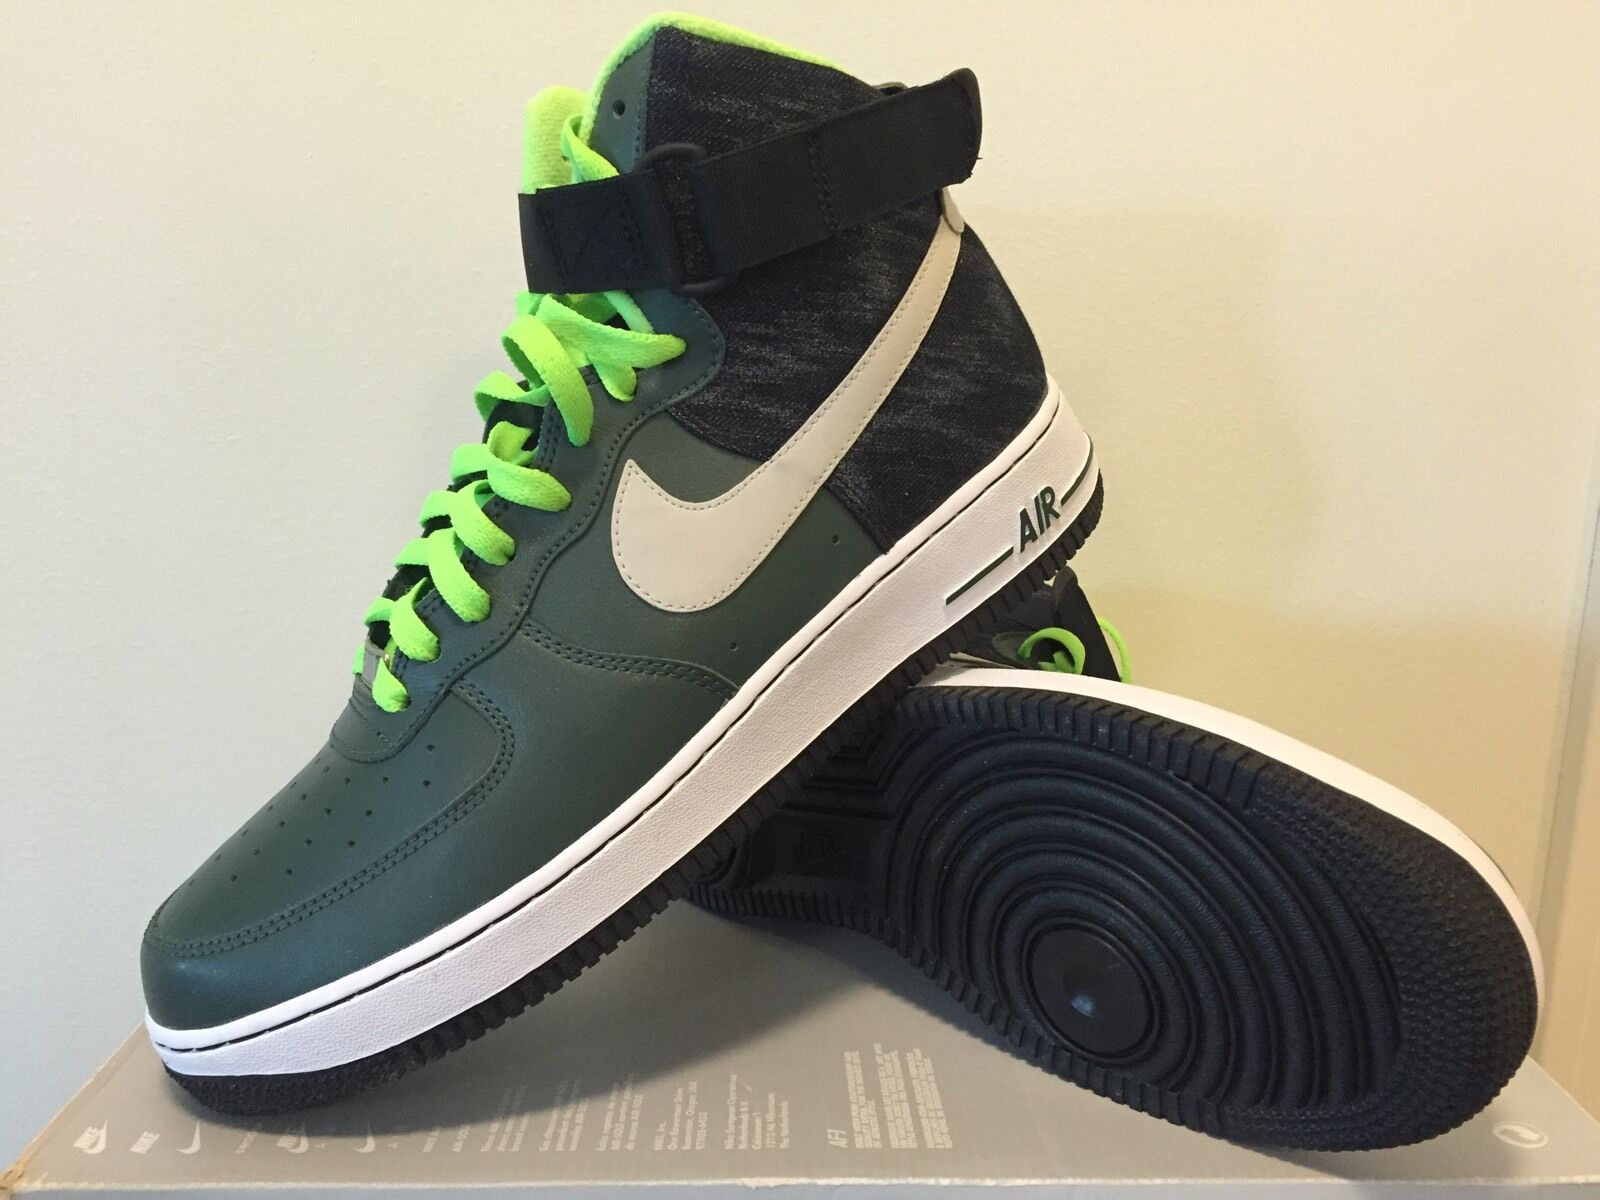 Nike air force 1 07 m Uomo noi taglia 10 1 / 2 (no riquadro cover)